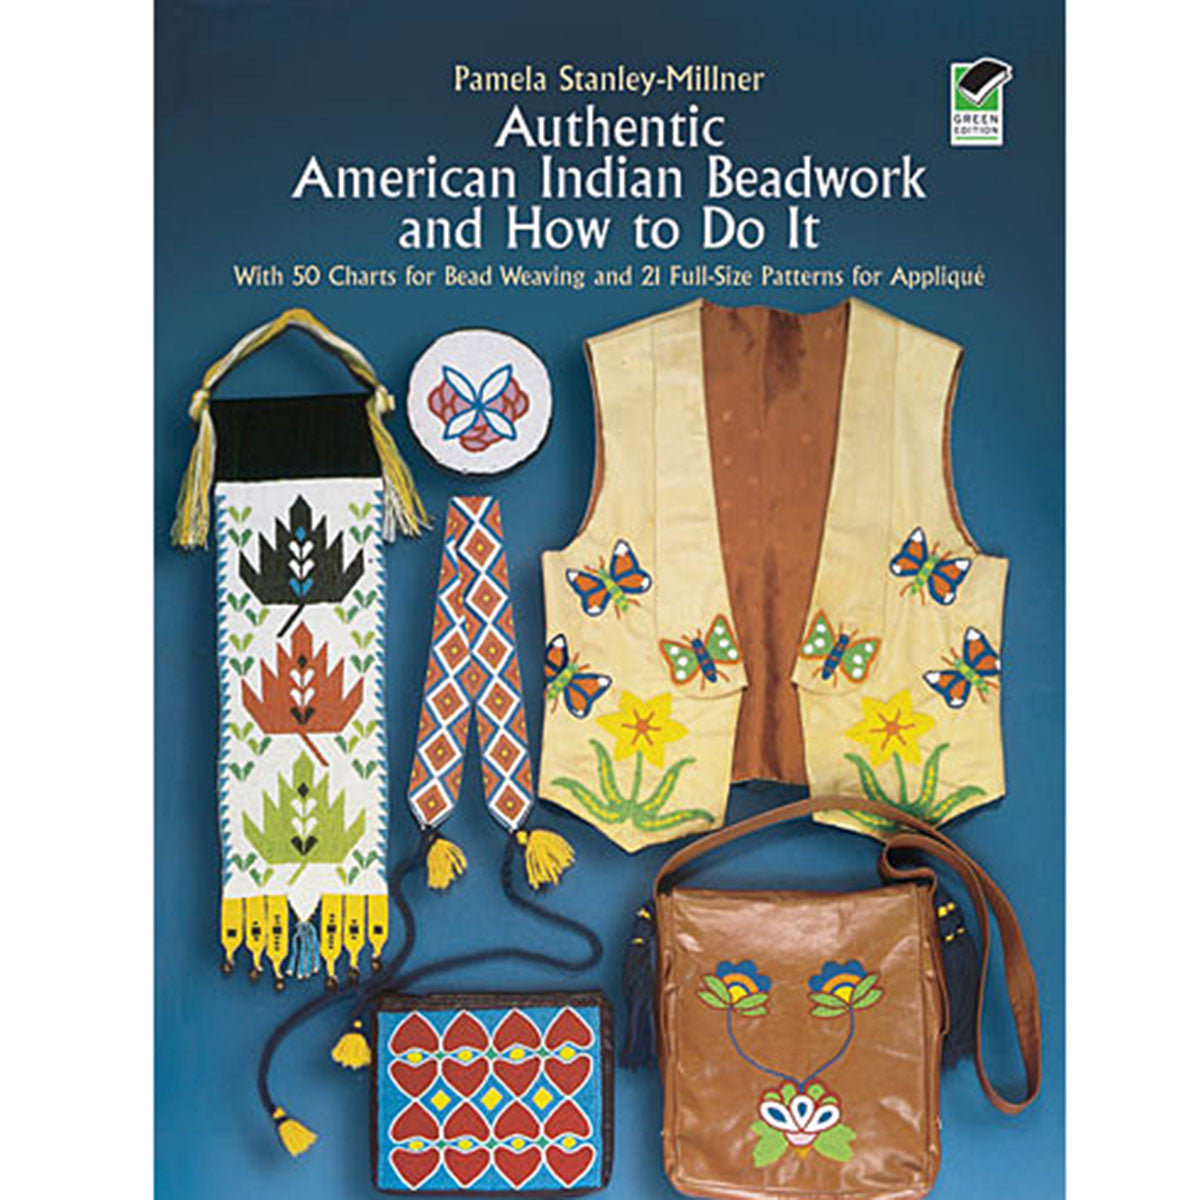 Image of 978-0-486-24739-7 - Authentic American Indian Beadwork and How to Do It: